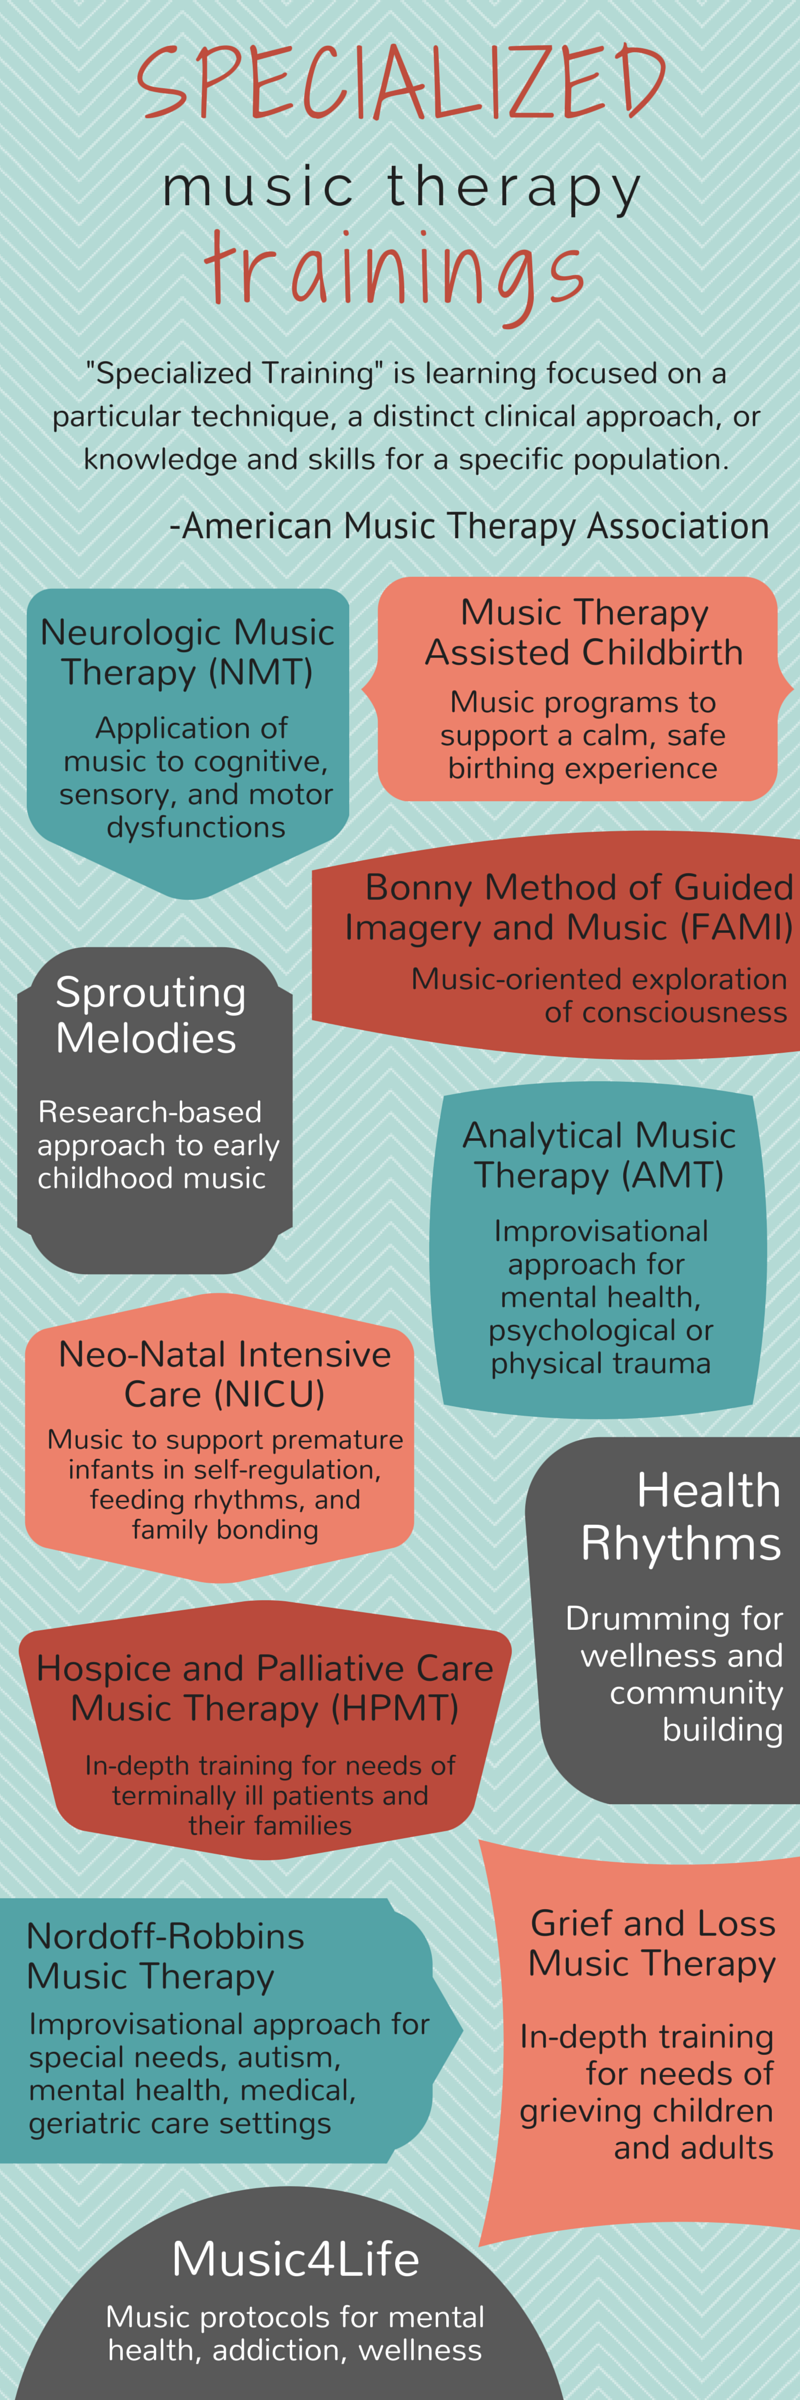 Specialized Music Therapy Trainings